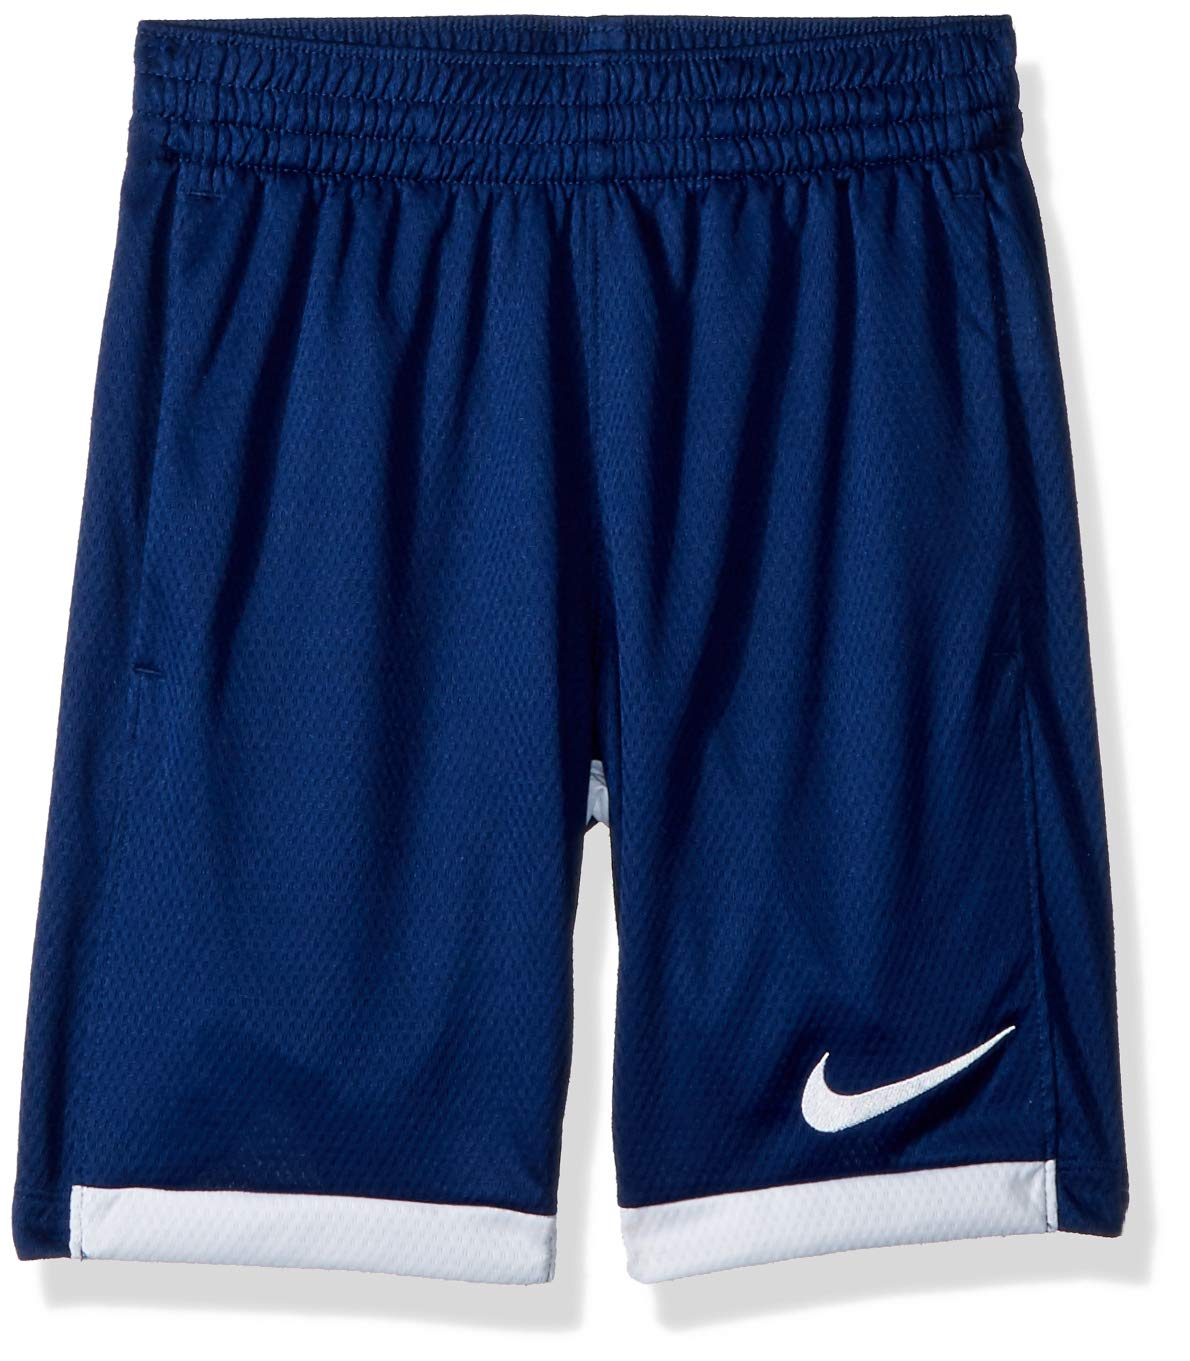 Nike 8'' Dry Short Trophy, Dri-FIT Boys' Training Shorts, Athletic Shorts, Blue/Void/White/White, S by Nike